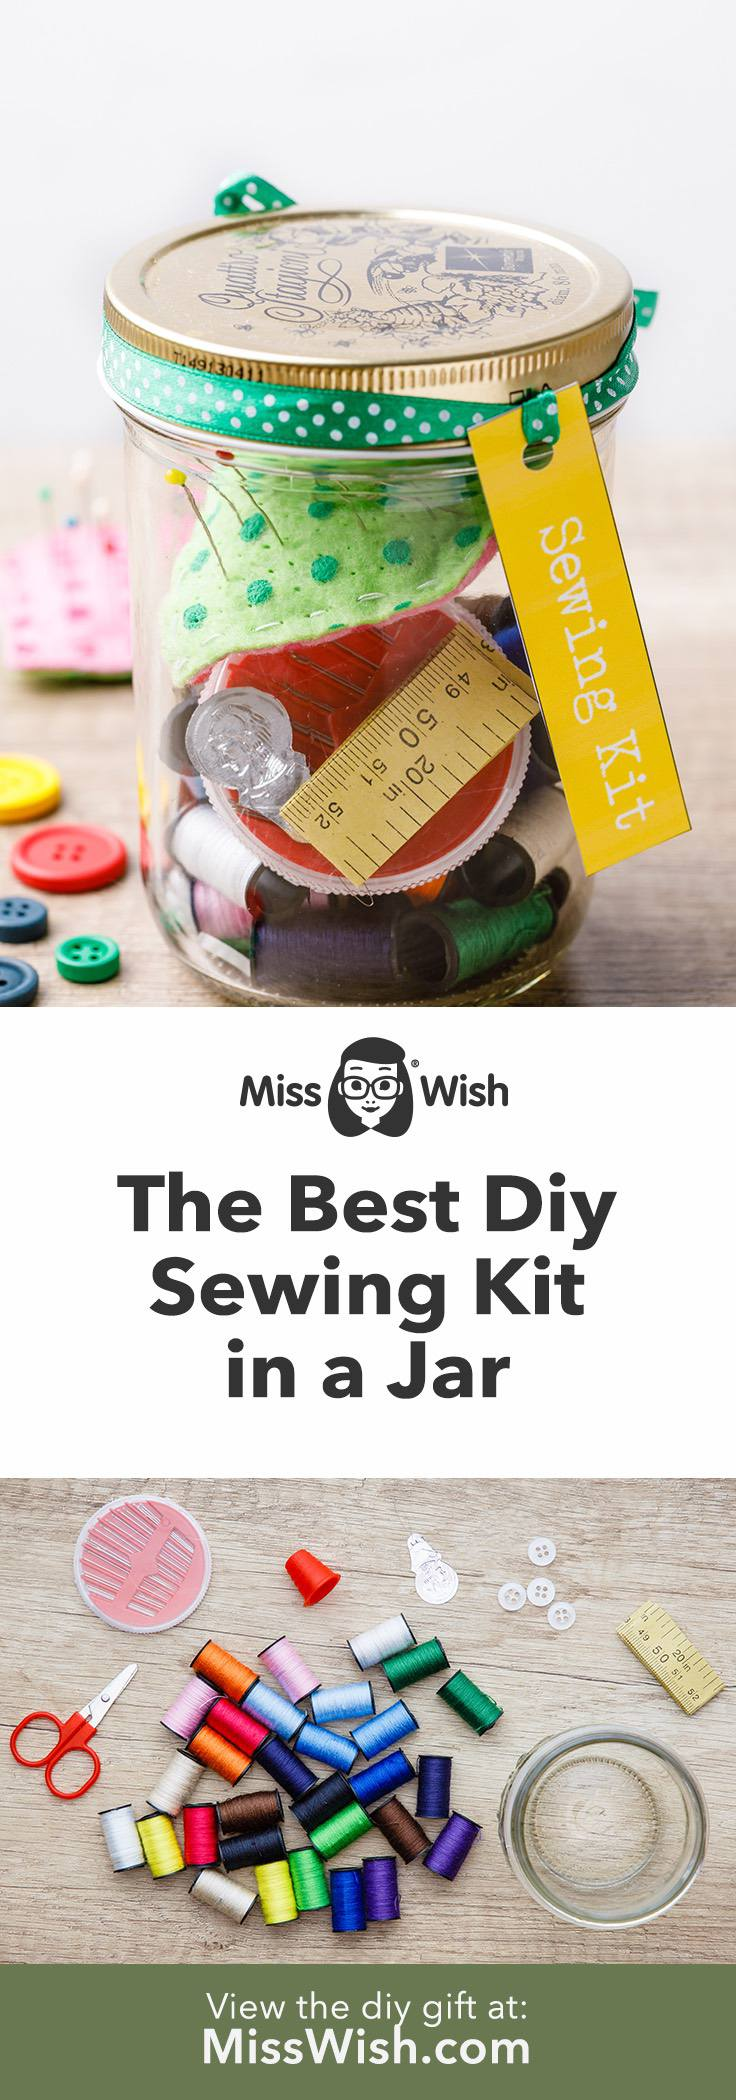 Diy Sewing Kit Gift for Crafty People